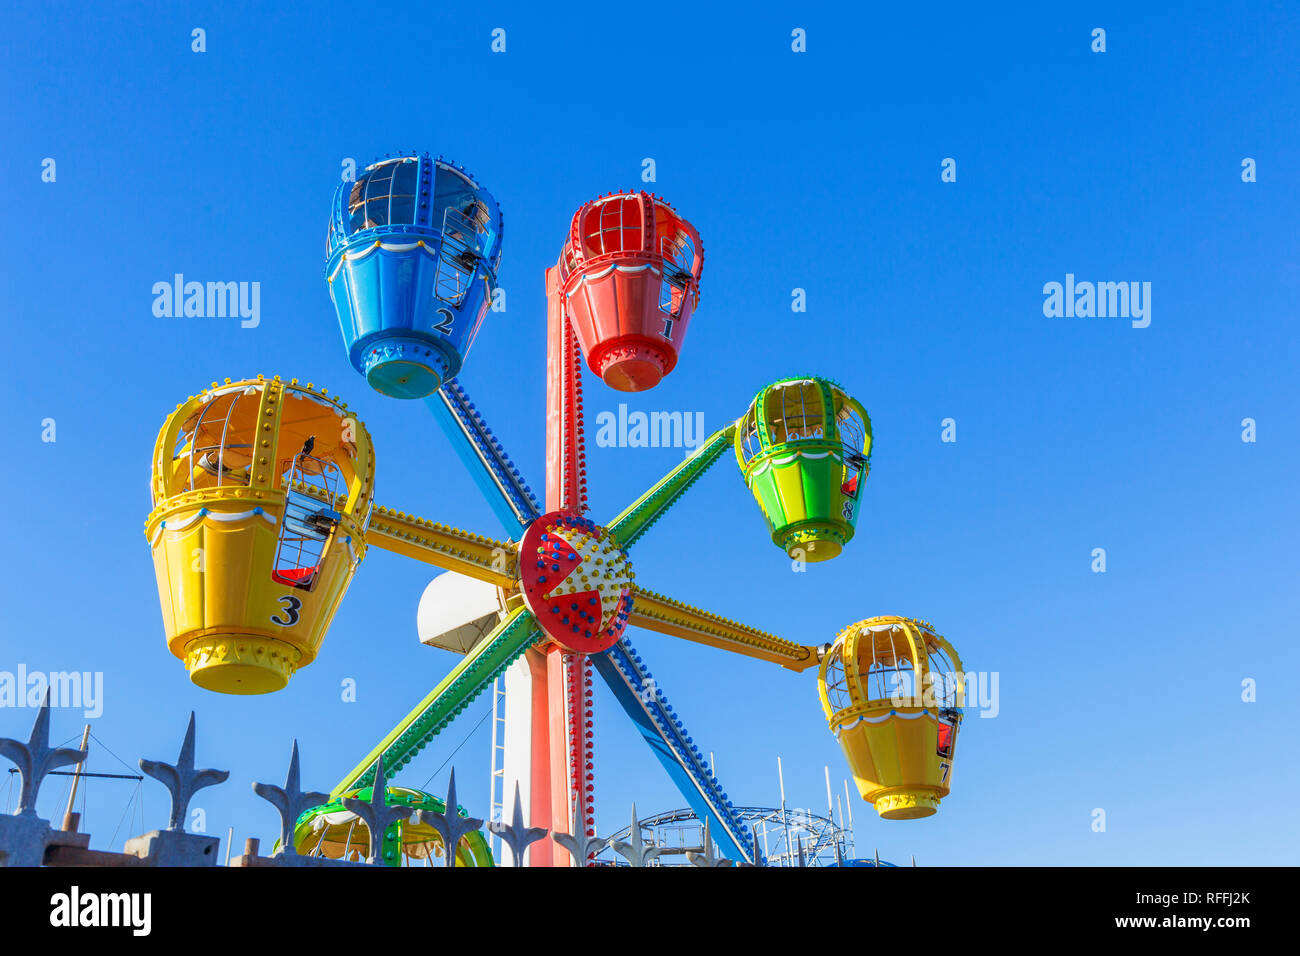 Brightly coloured ferris wheel ride at a funfair on Clarence Pier, Clarence Esplanade, Southsea, Portsmouth, UK Stock Photo